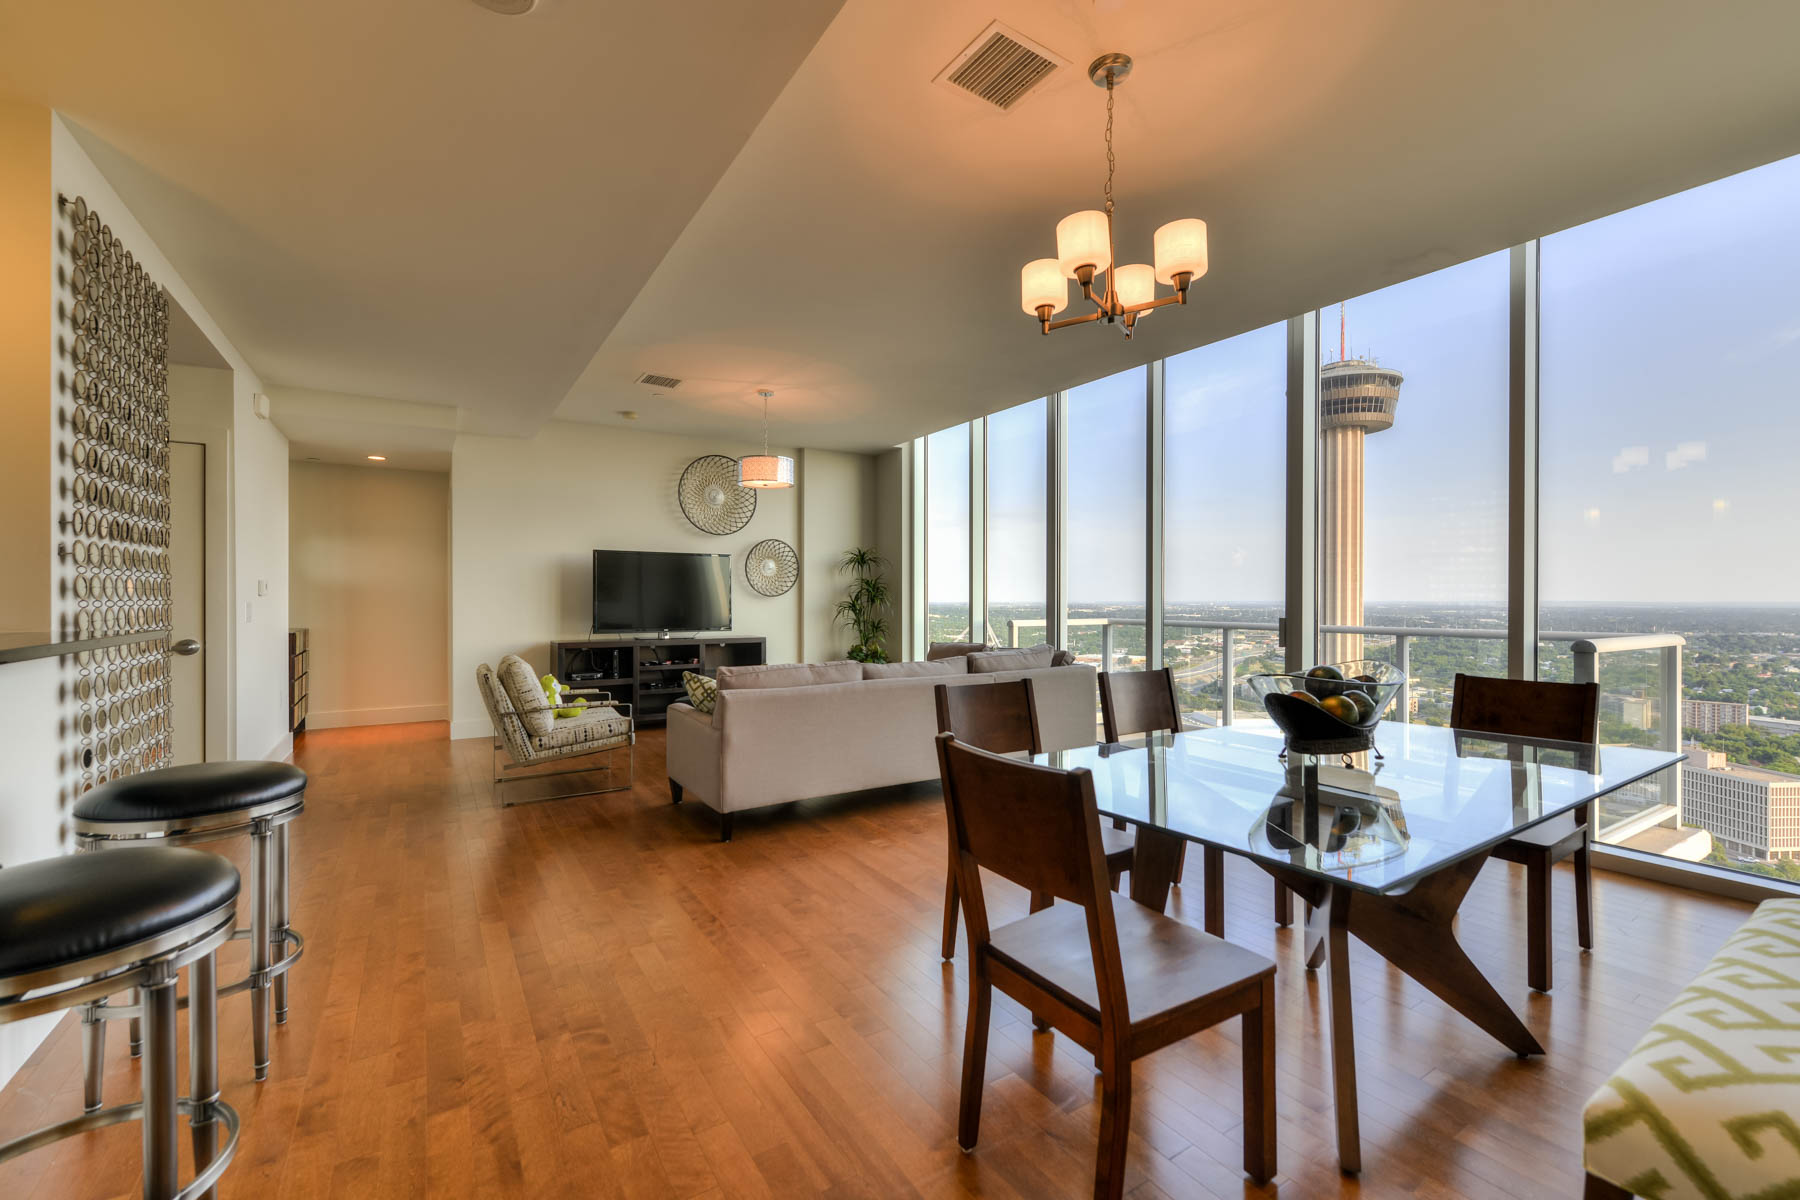 Piso por un Alquiler en Spacious Condo with Unmatched Amenities 610 E Market St 3105 San Antonio, Texas 78205 Estados Unidos